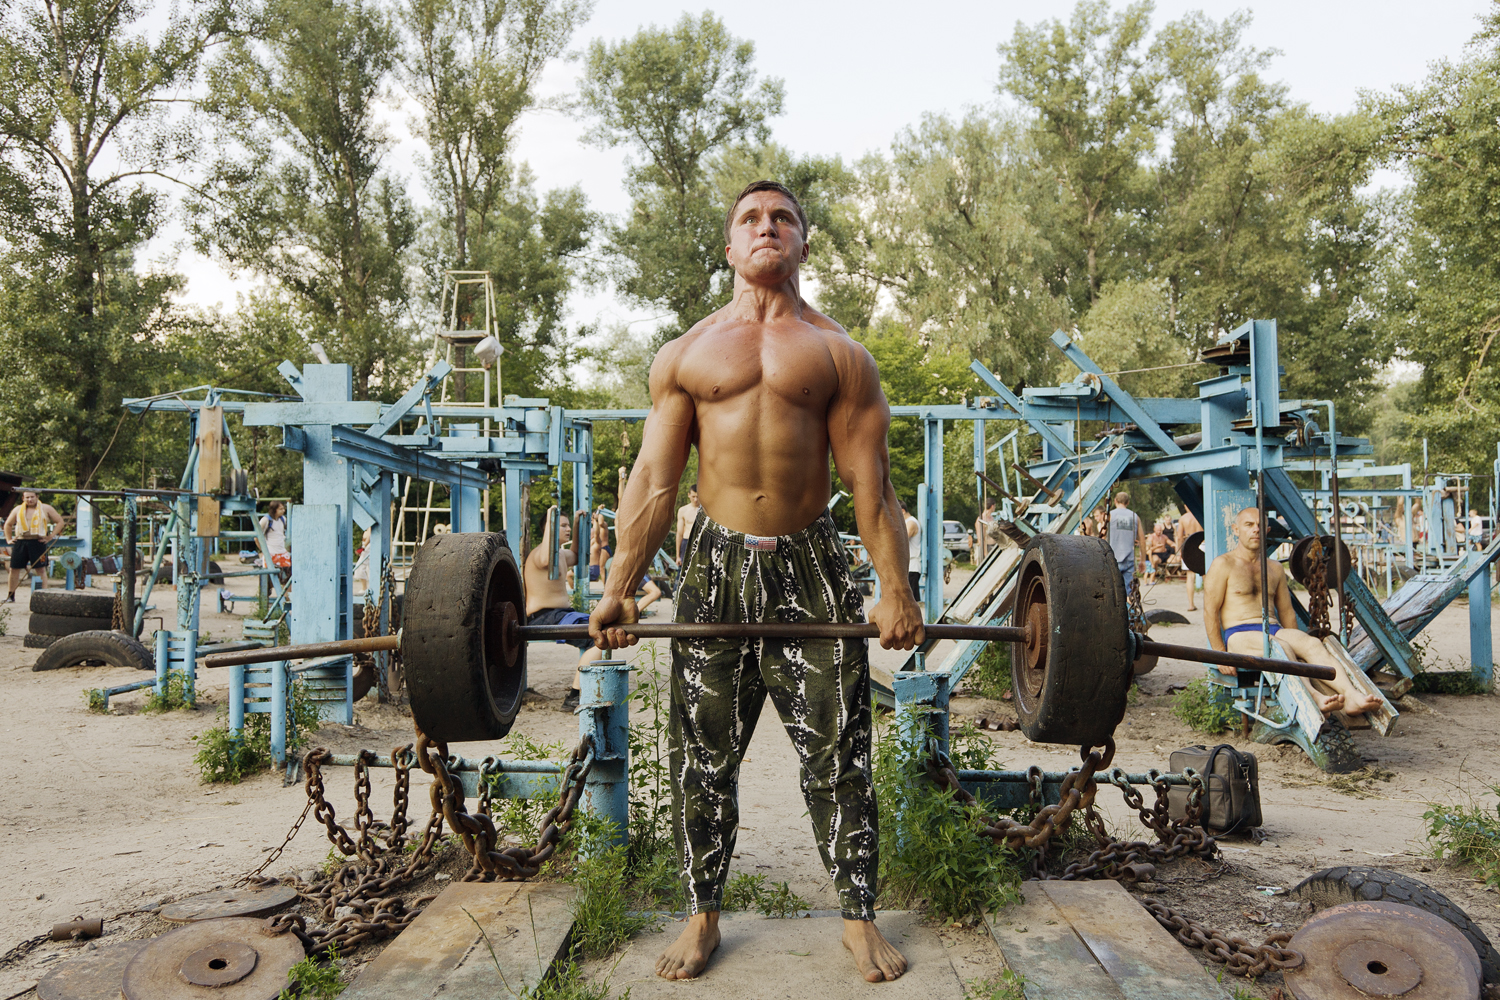 Kachalka, a public, open air gym built in soviet-era Ukraine, attracts serious body builders and amateurs alike.